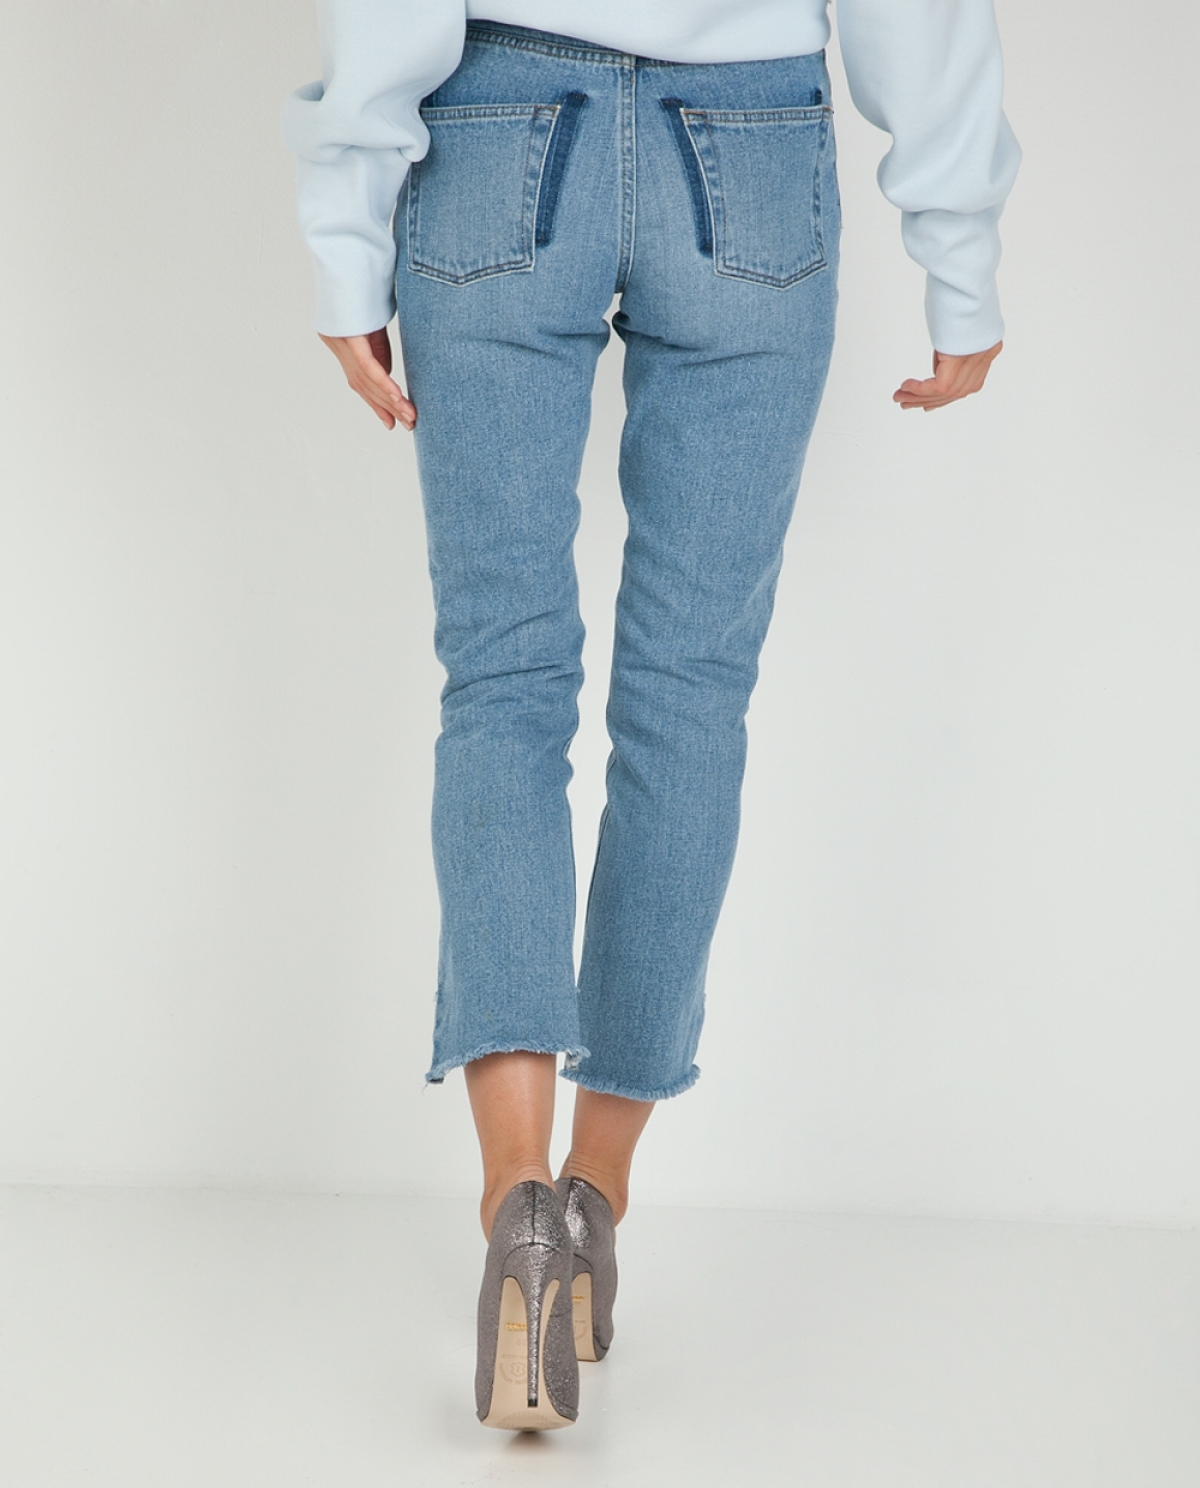 Kelly Barrel Cropped Jeans